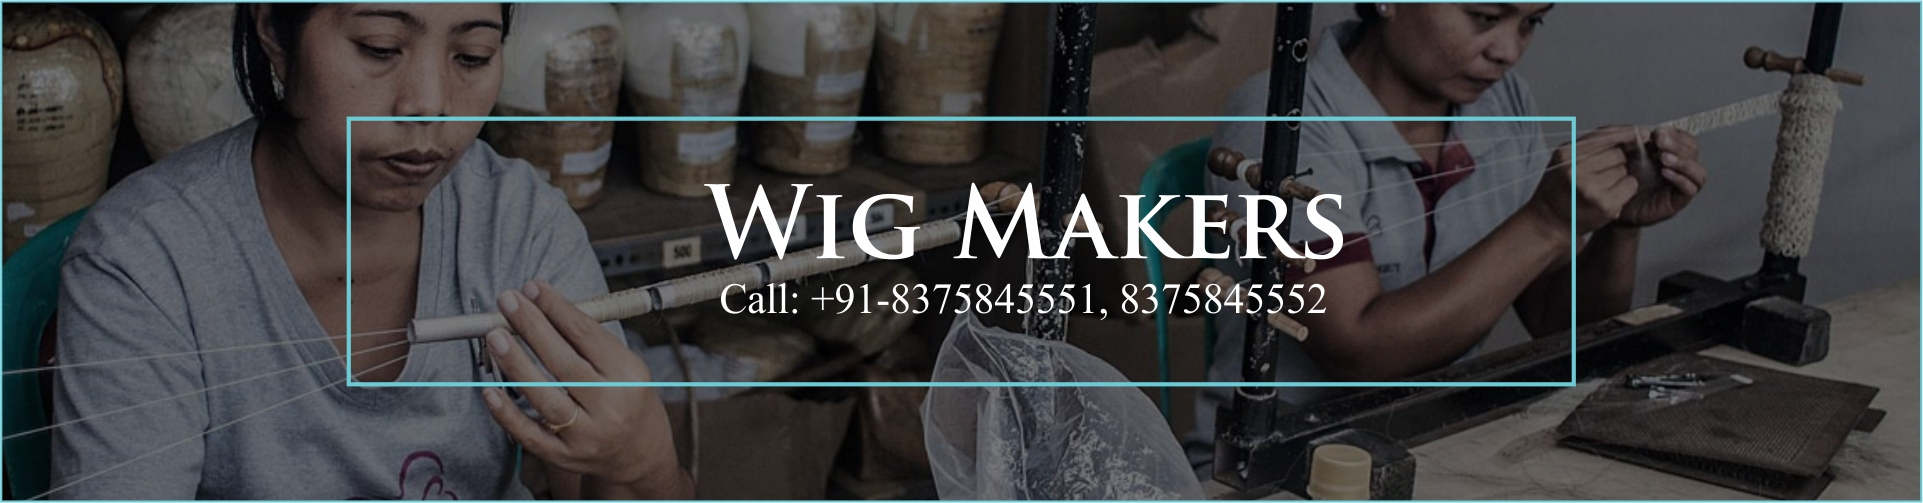 Wig Makers - PHC Hair Clinic